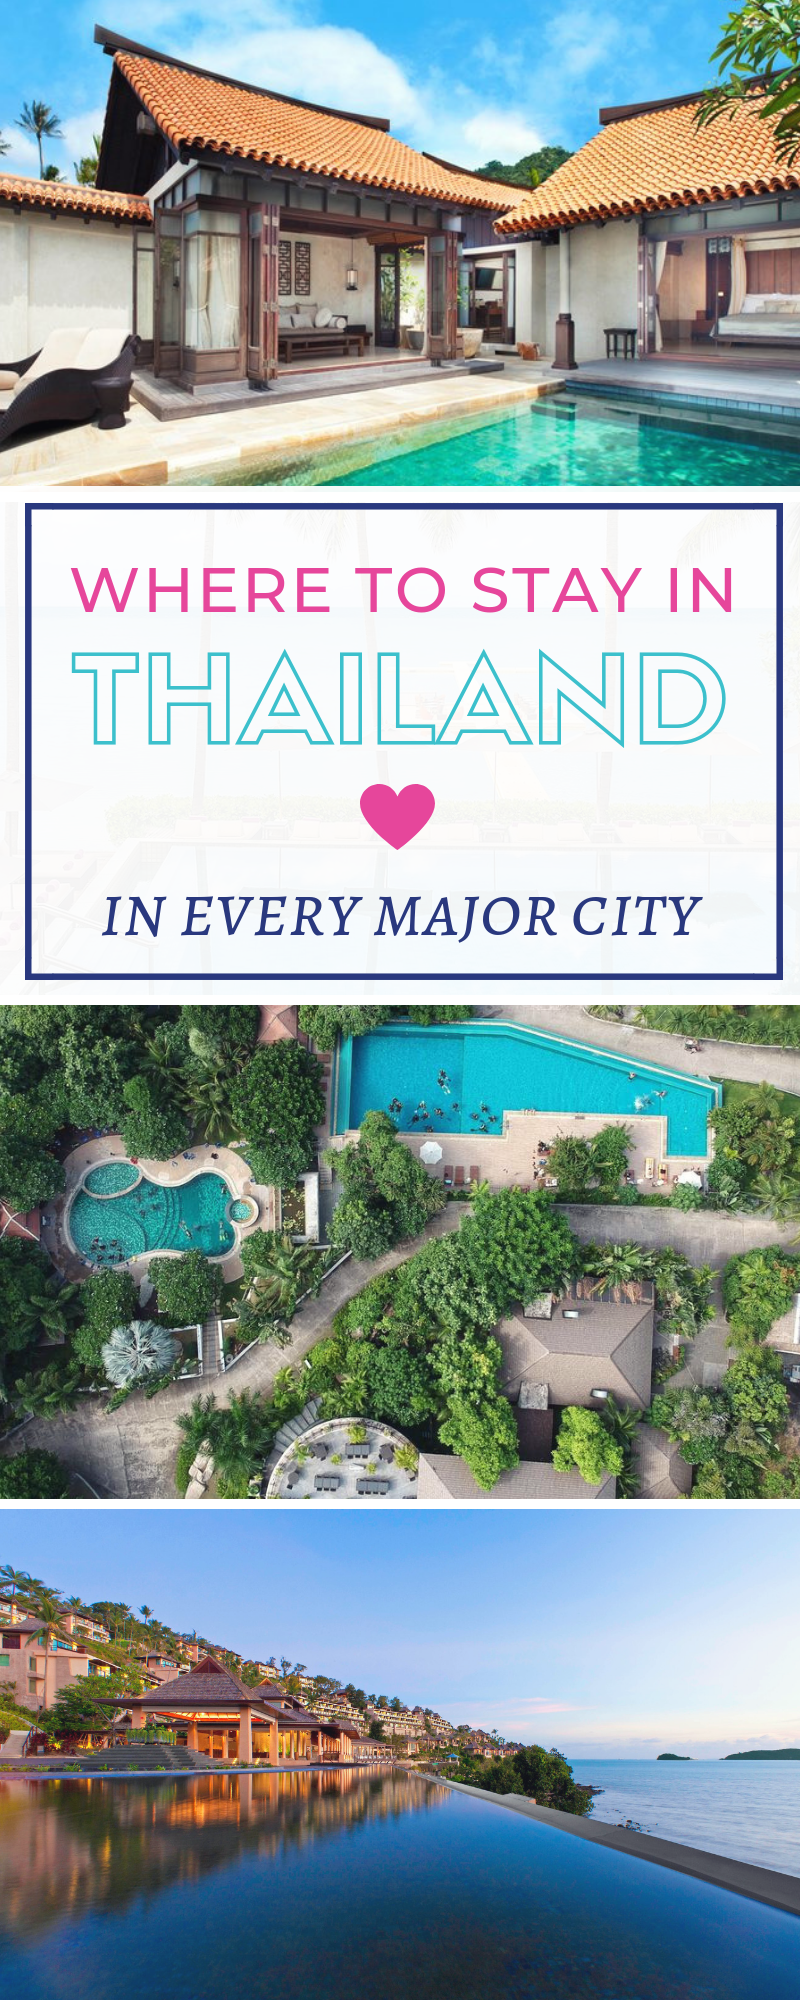 Where to Stay in Thailand, in Every Major City